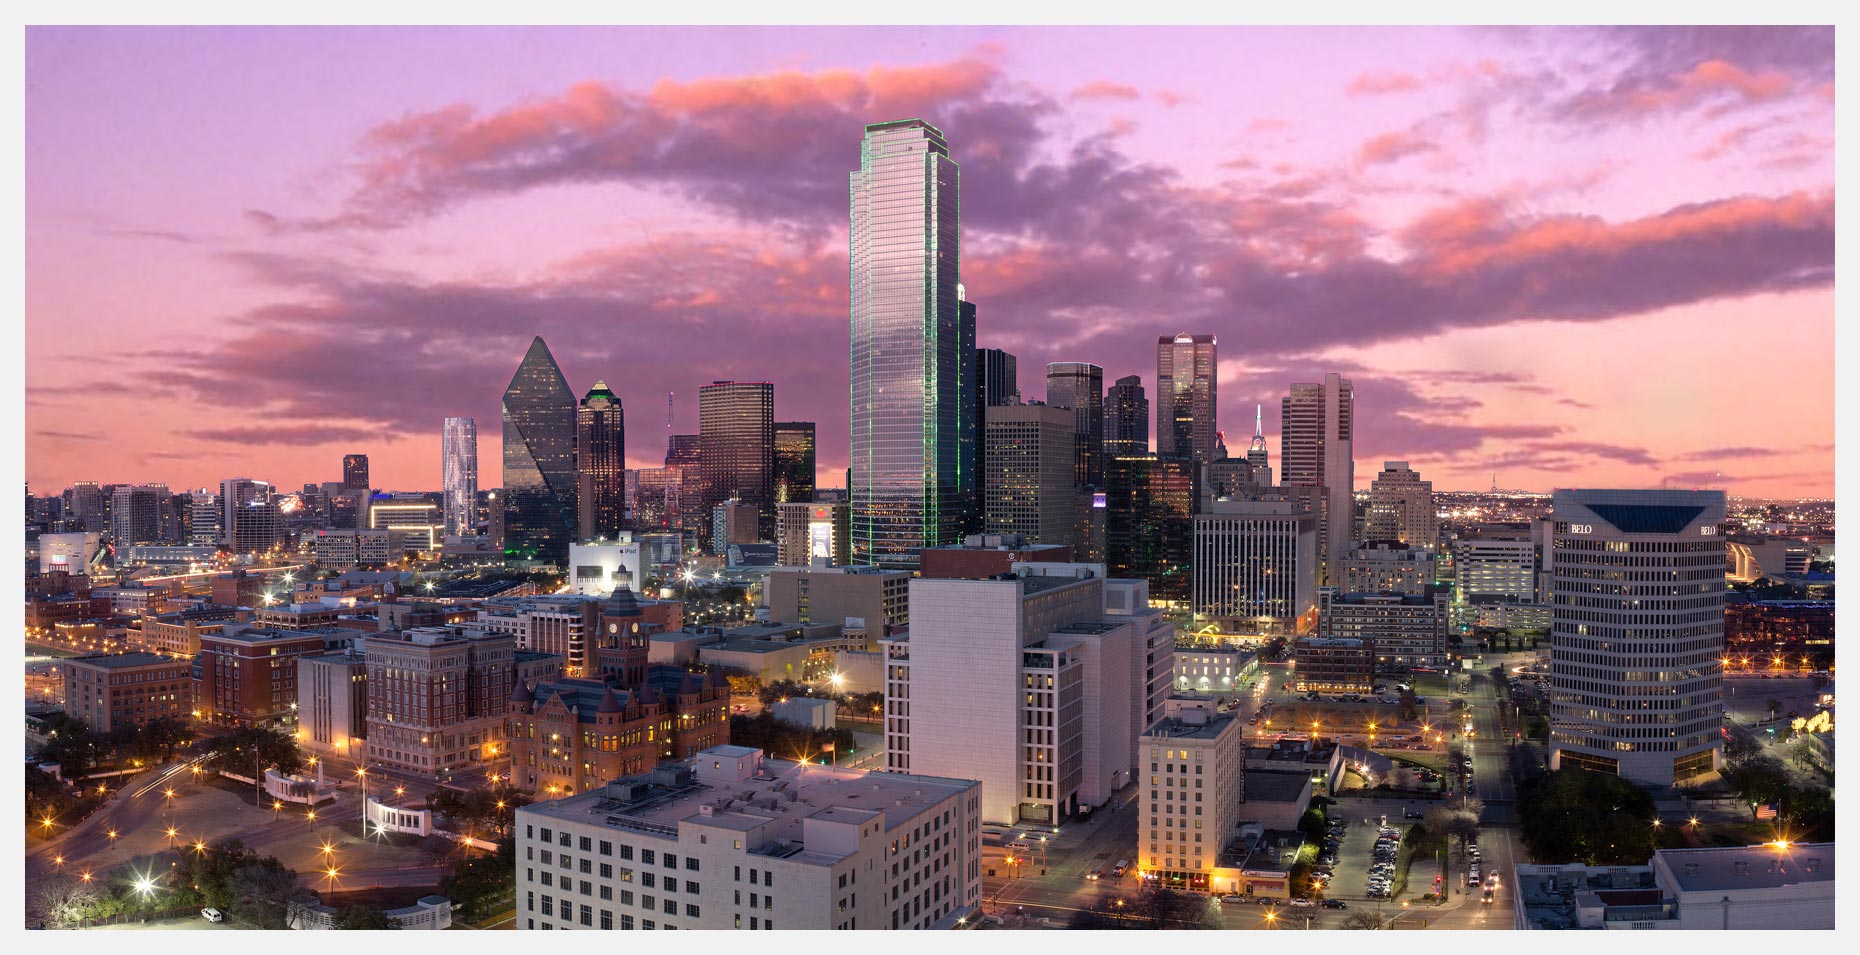 Dallas-Texas-Skyline-at-Sunset-with-Pink-Clouds